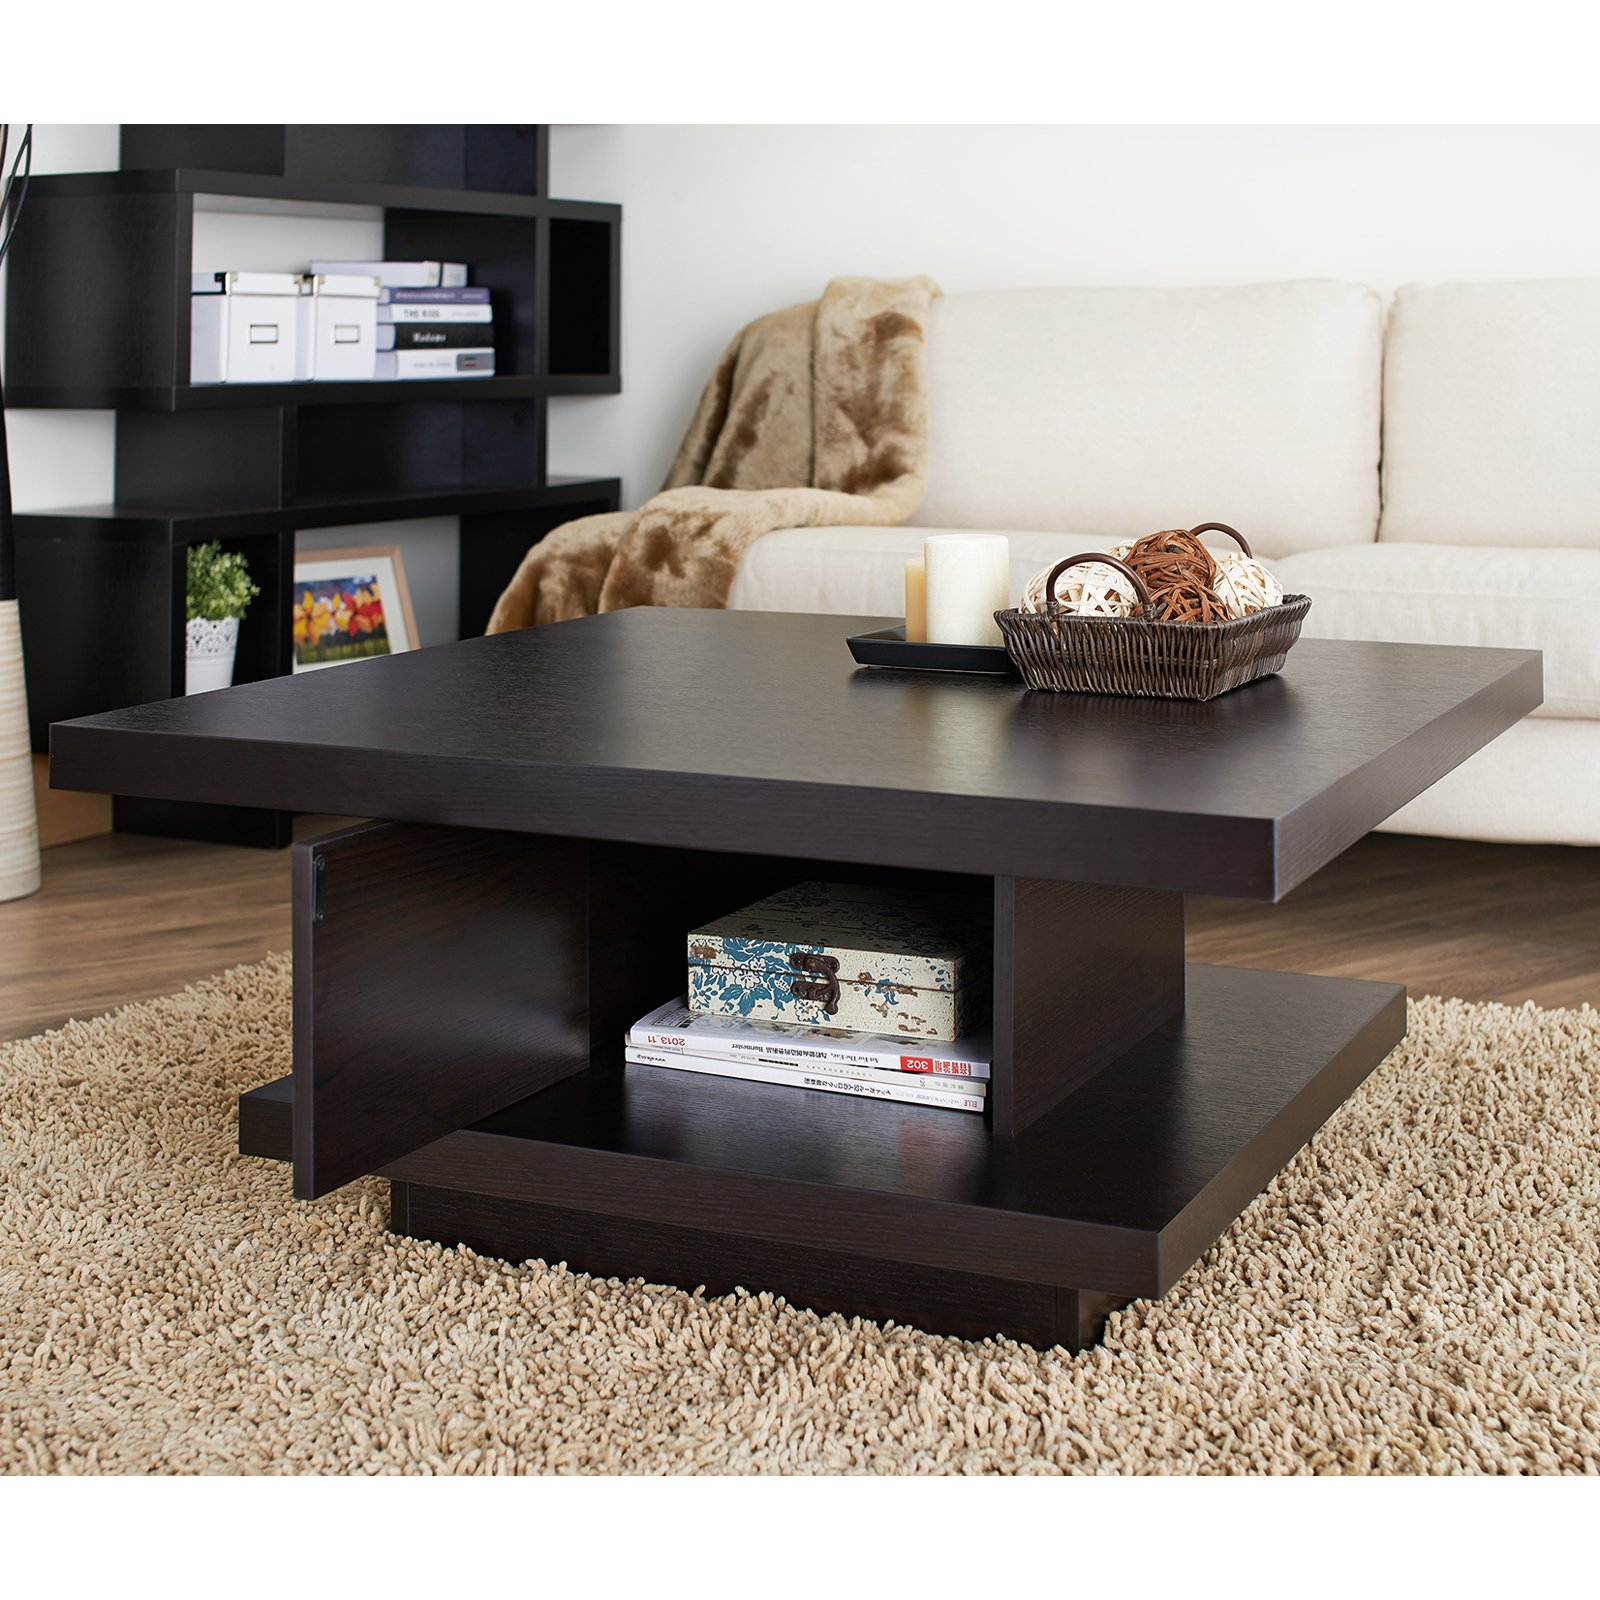 Furniture of america pagoda coffee table walmart watchthetrailerfo